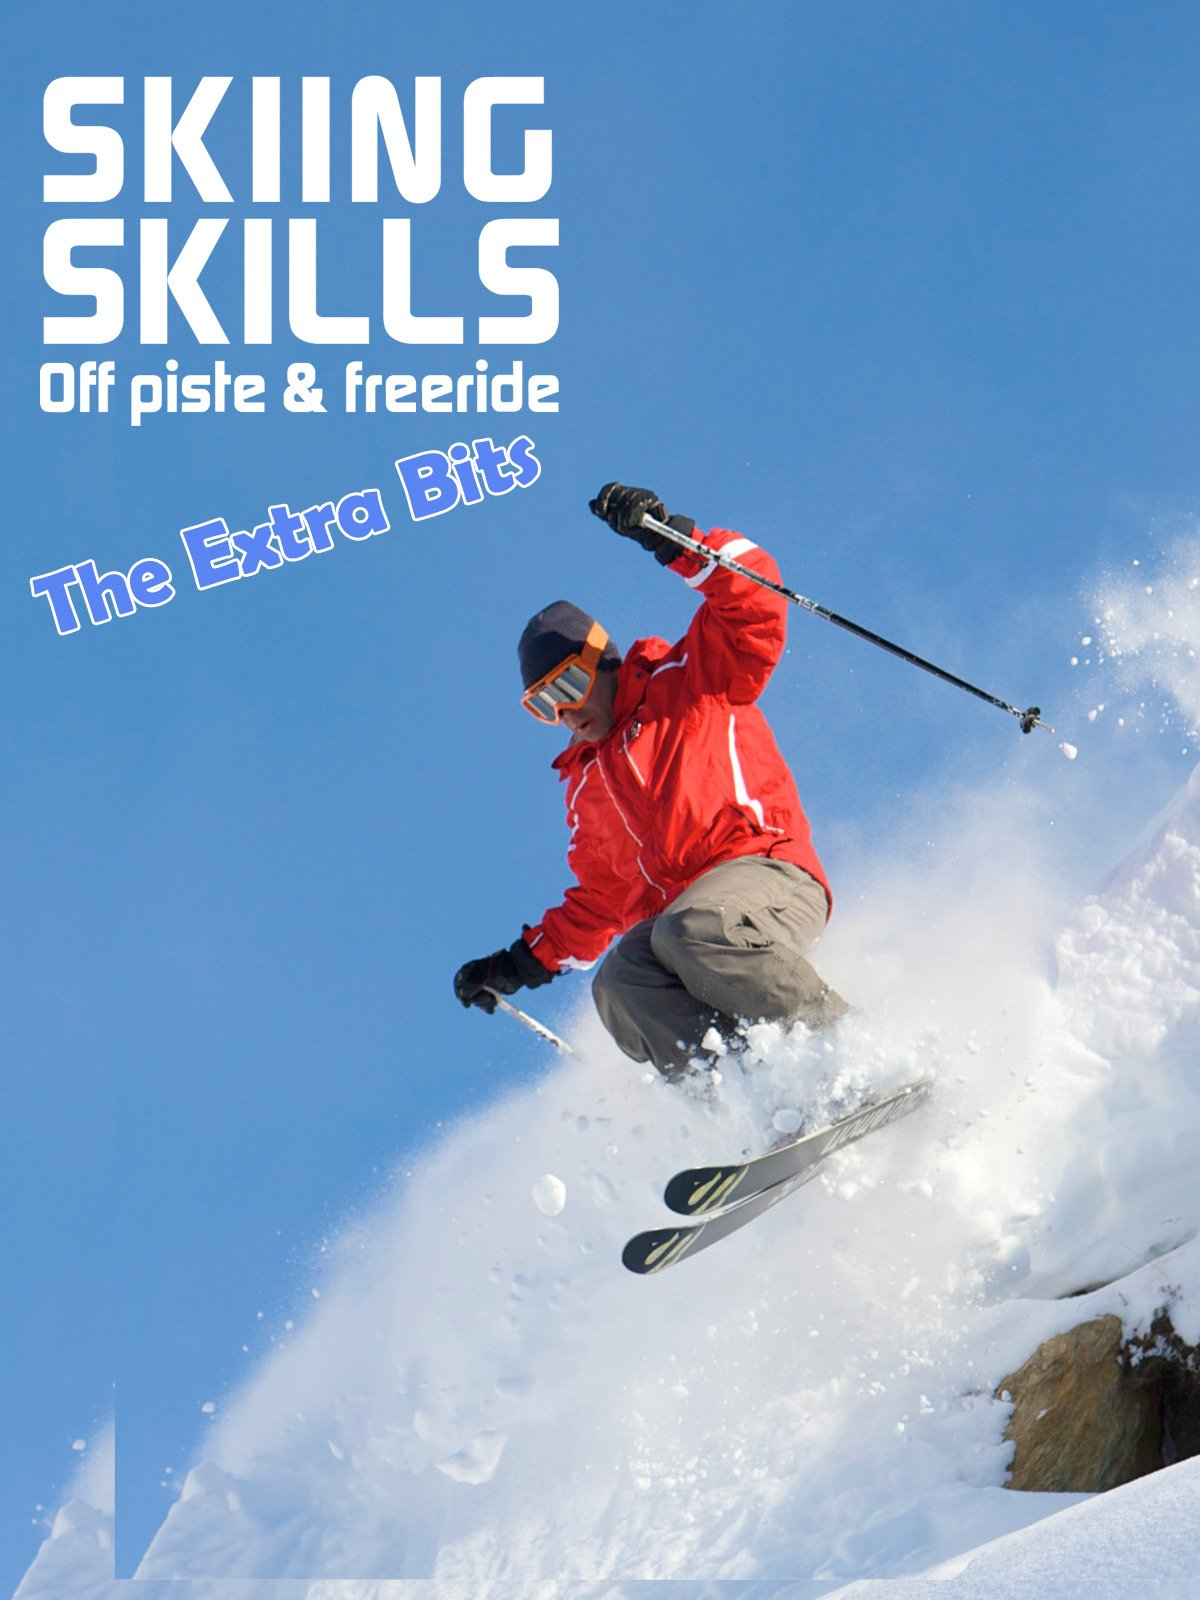 Skiing Skills - Off piste and freeride. The Extra Bits on Amazon Prime Video UK